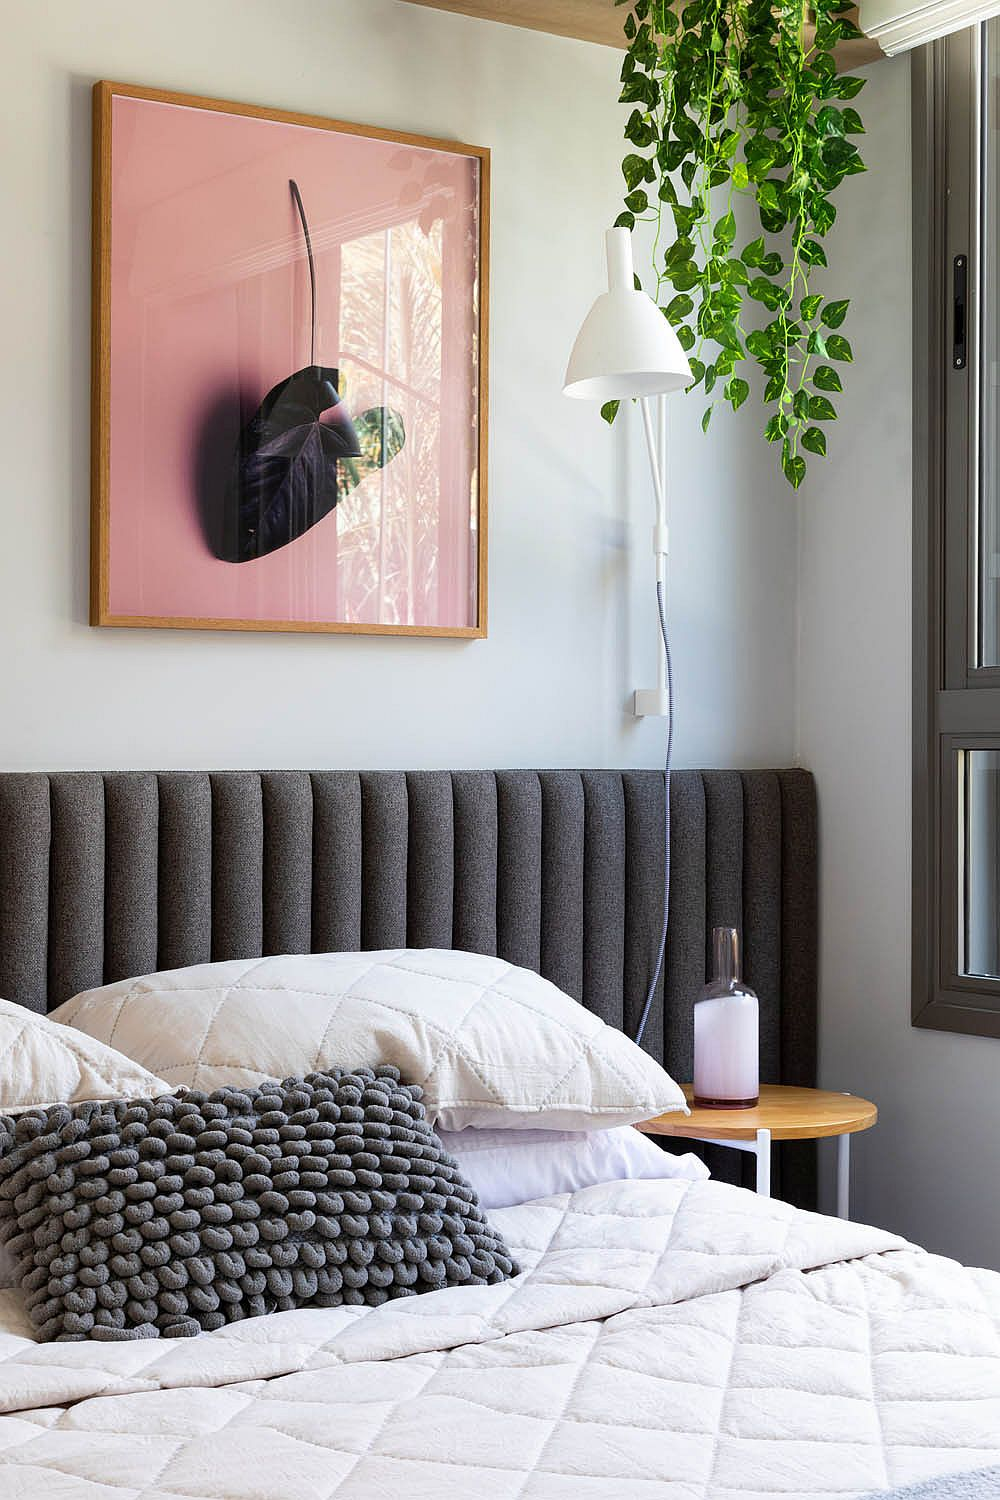 Natural-greenery-along-with-framed-botanicals-brings-freshness-to-the-bedroom-99787